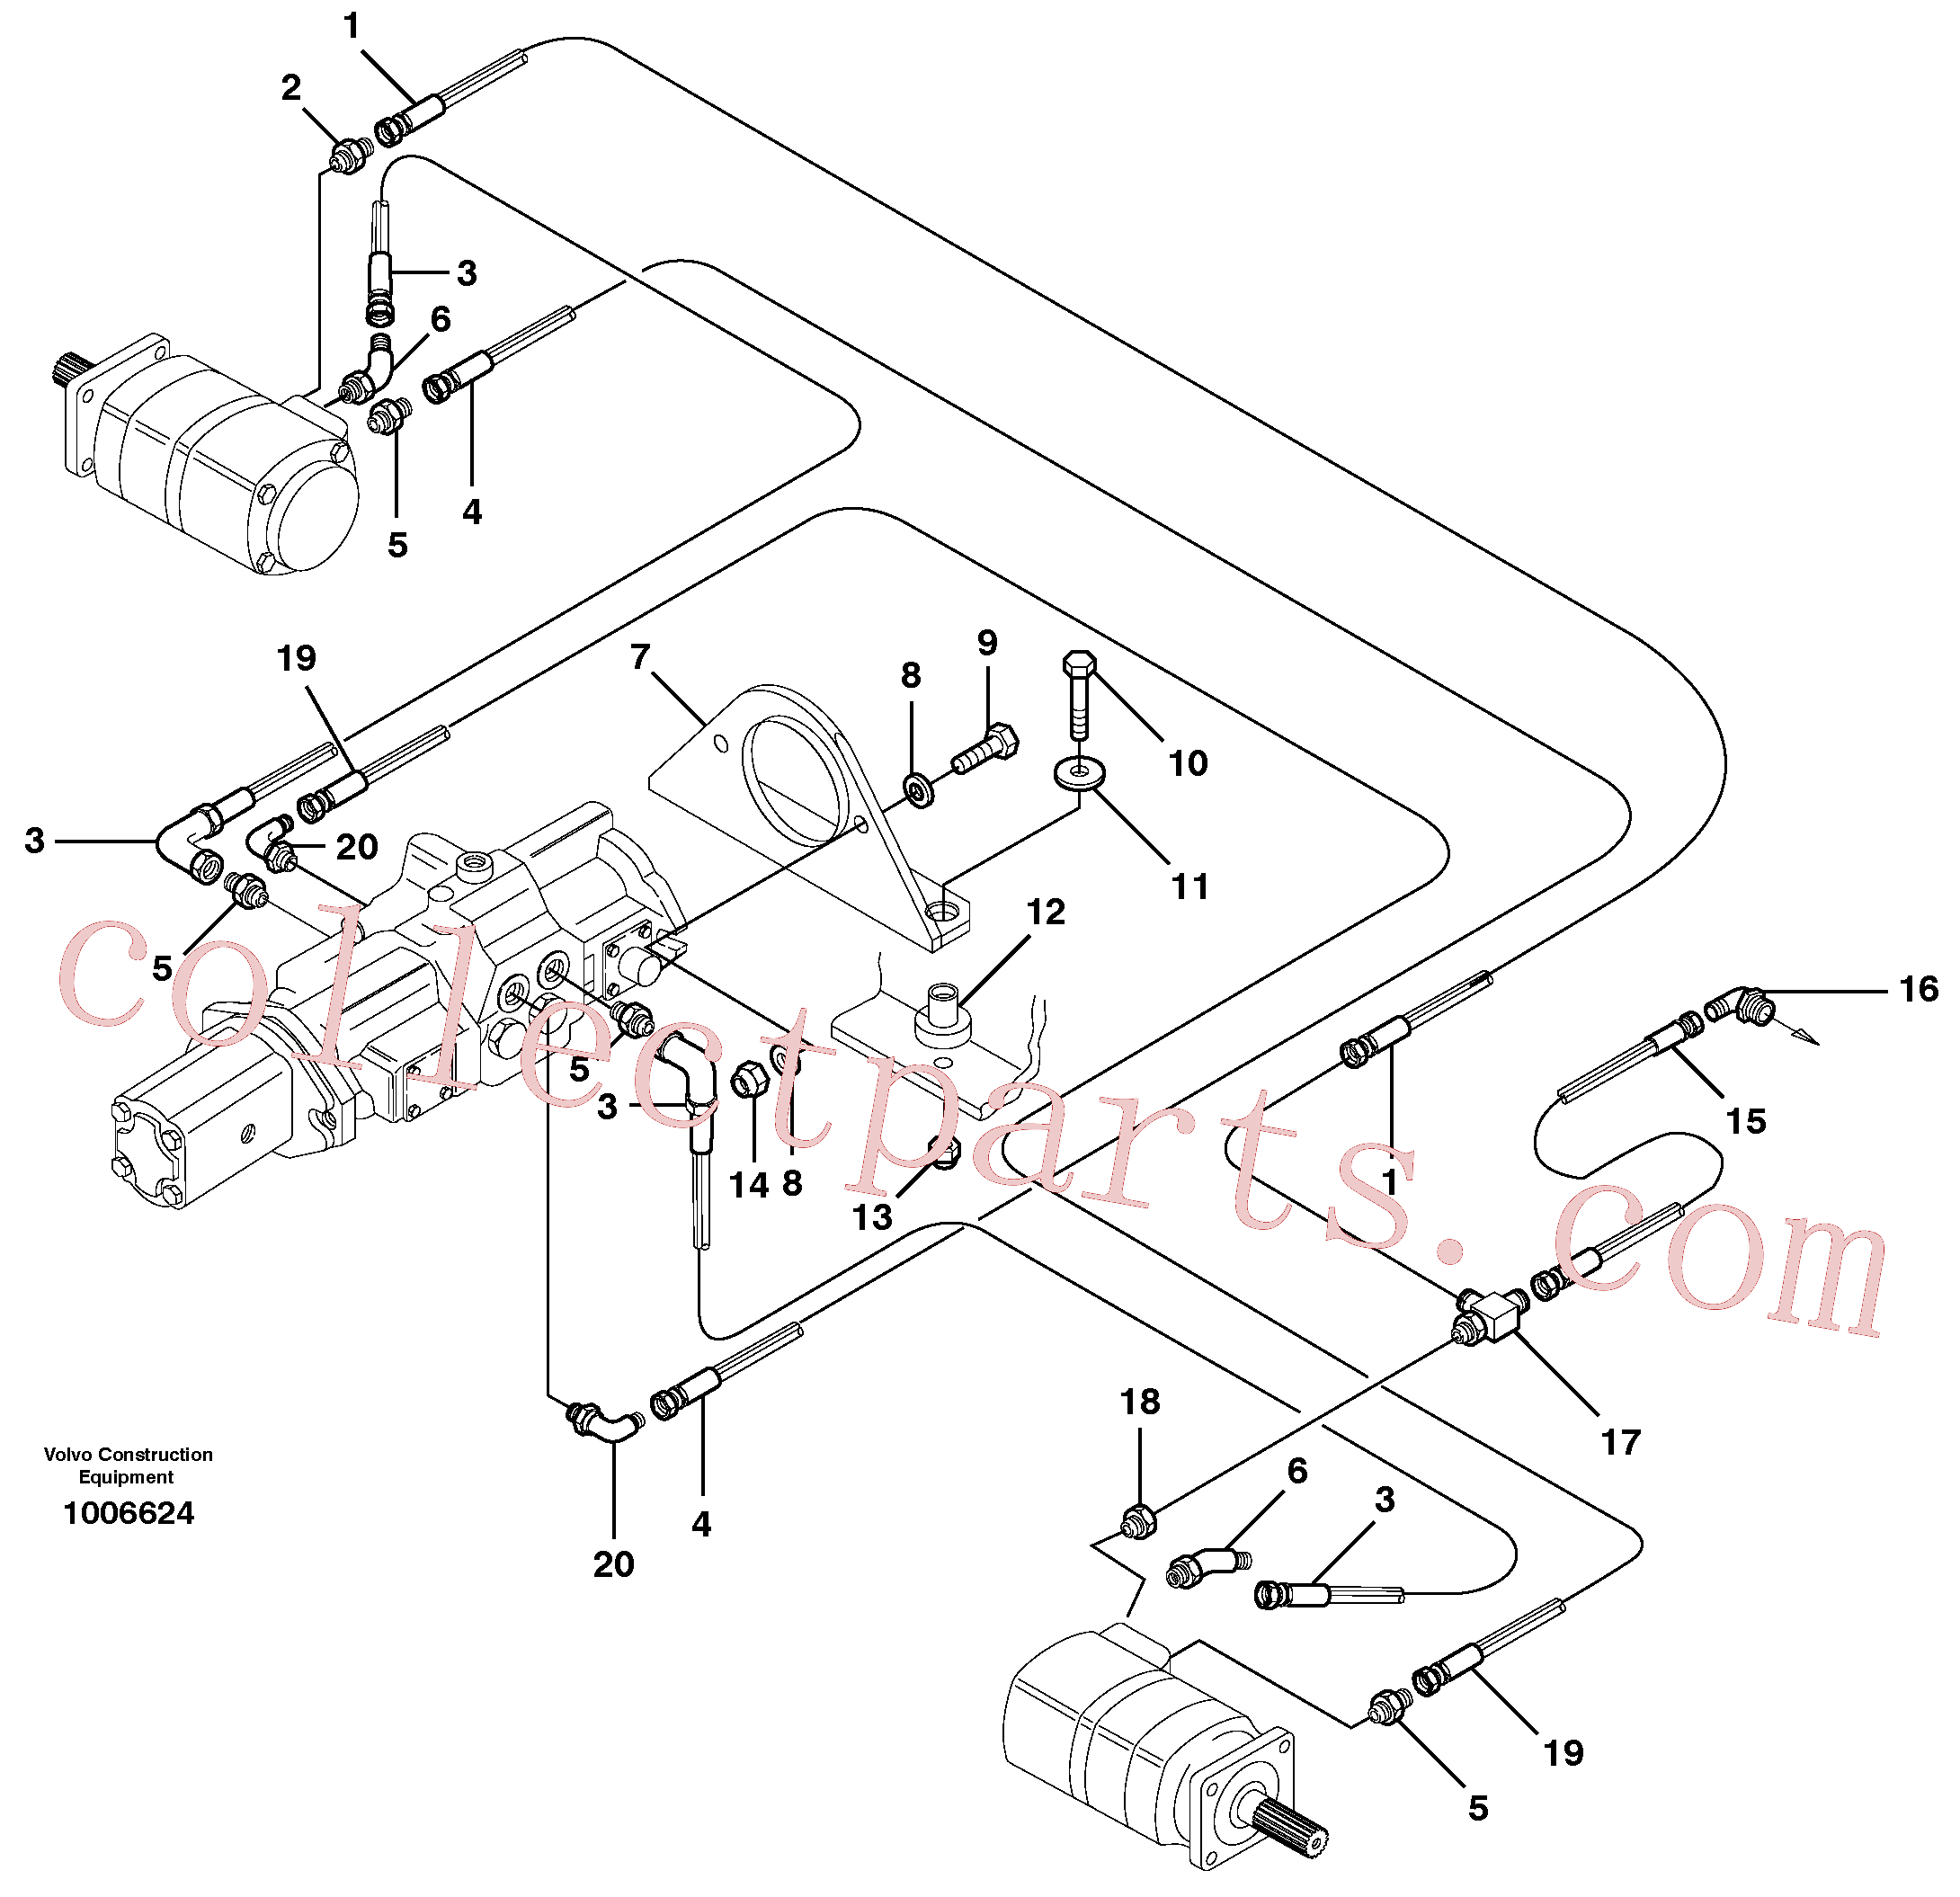 VOE950356 for Volvo Hydraulic system Transport(1006624 assembly)